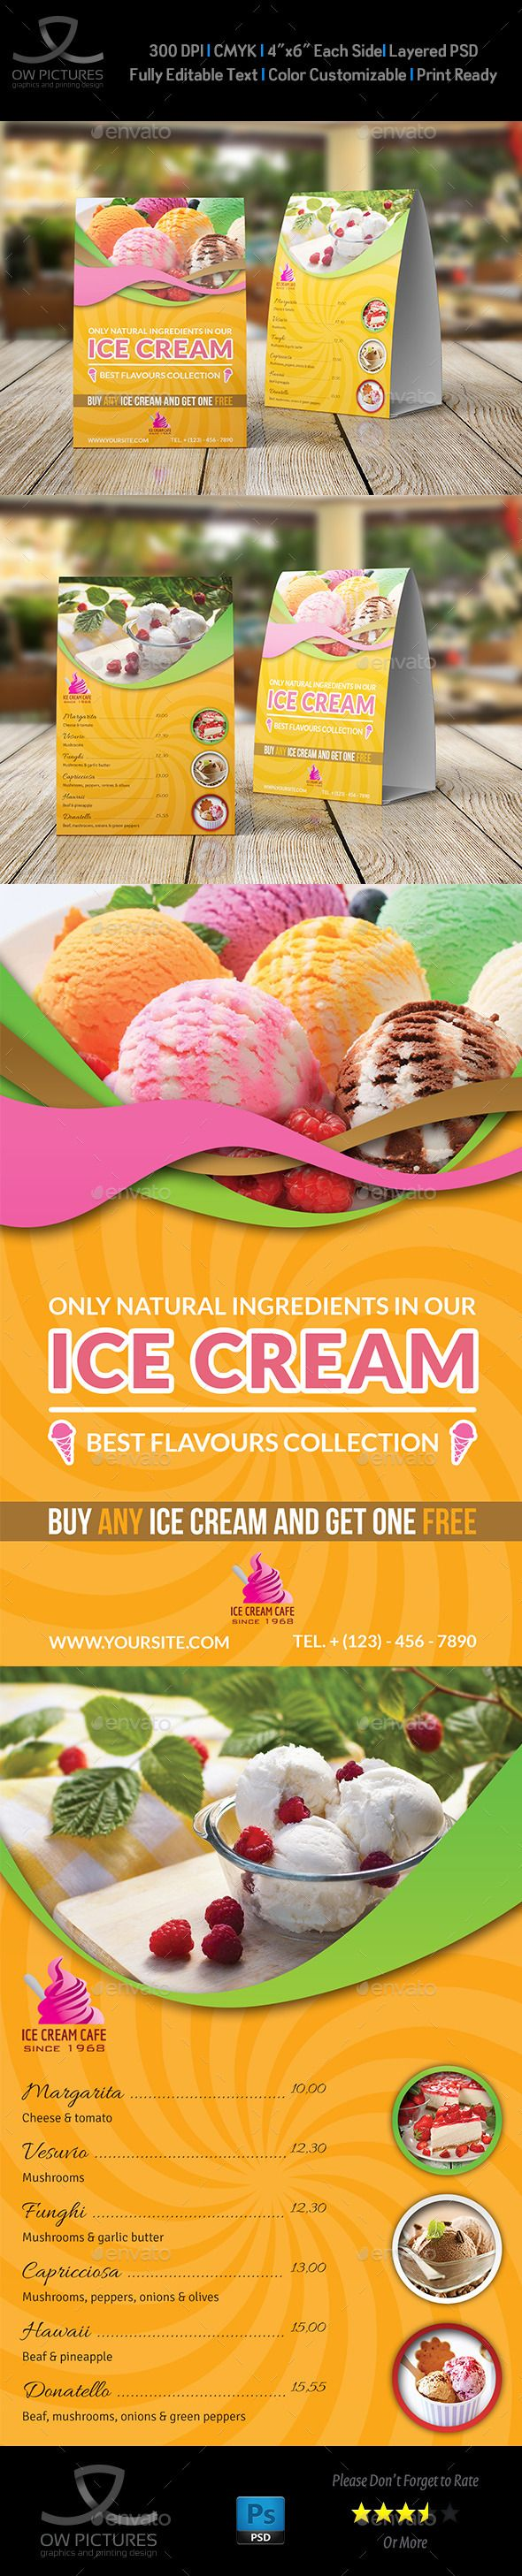 Ice Cream Table Tent Template  sc 1 st  Pinterest & Ice Cream Table Tent Template | Table tents Template and Print ...